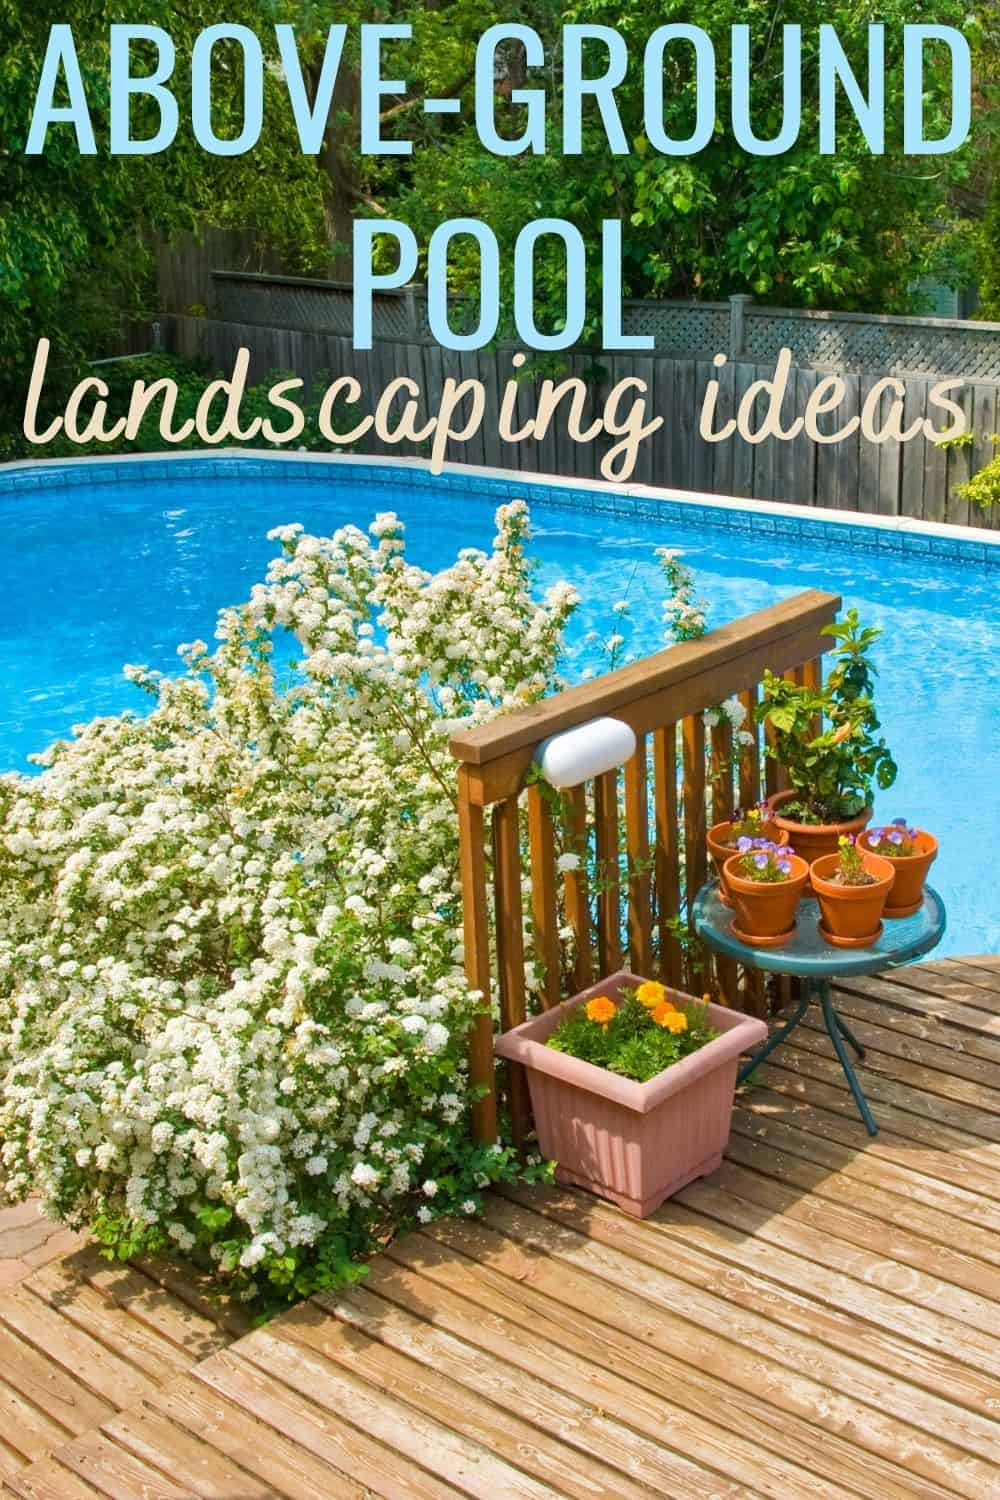 above-ground pool landscaping ideas